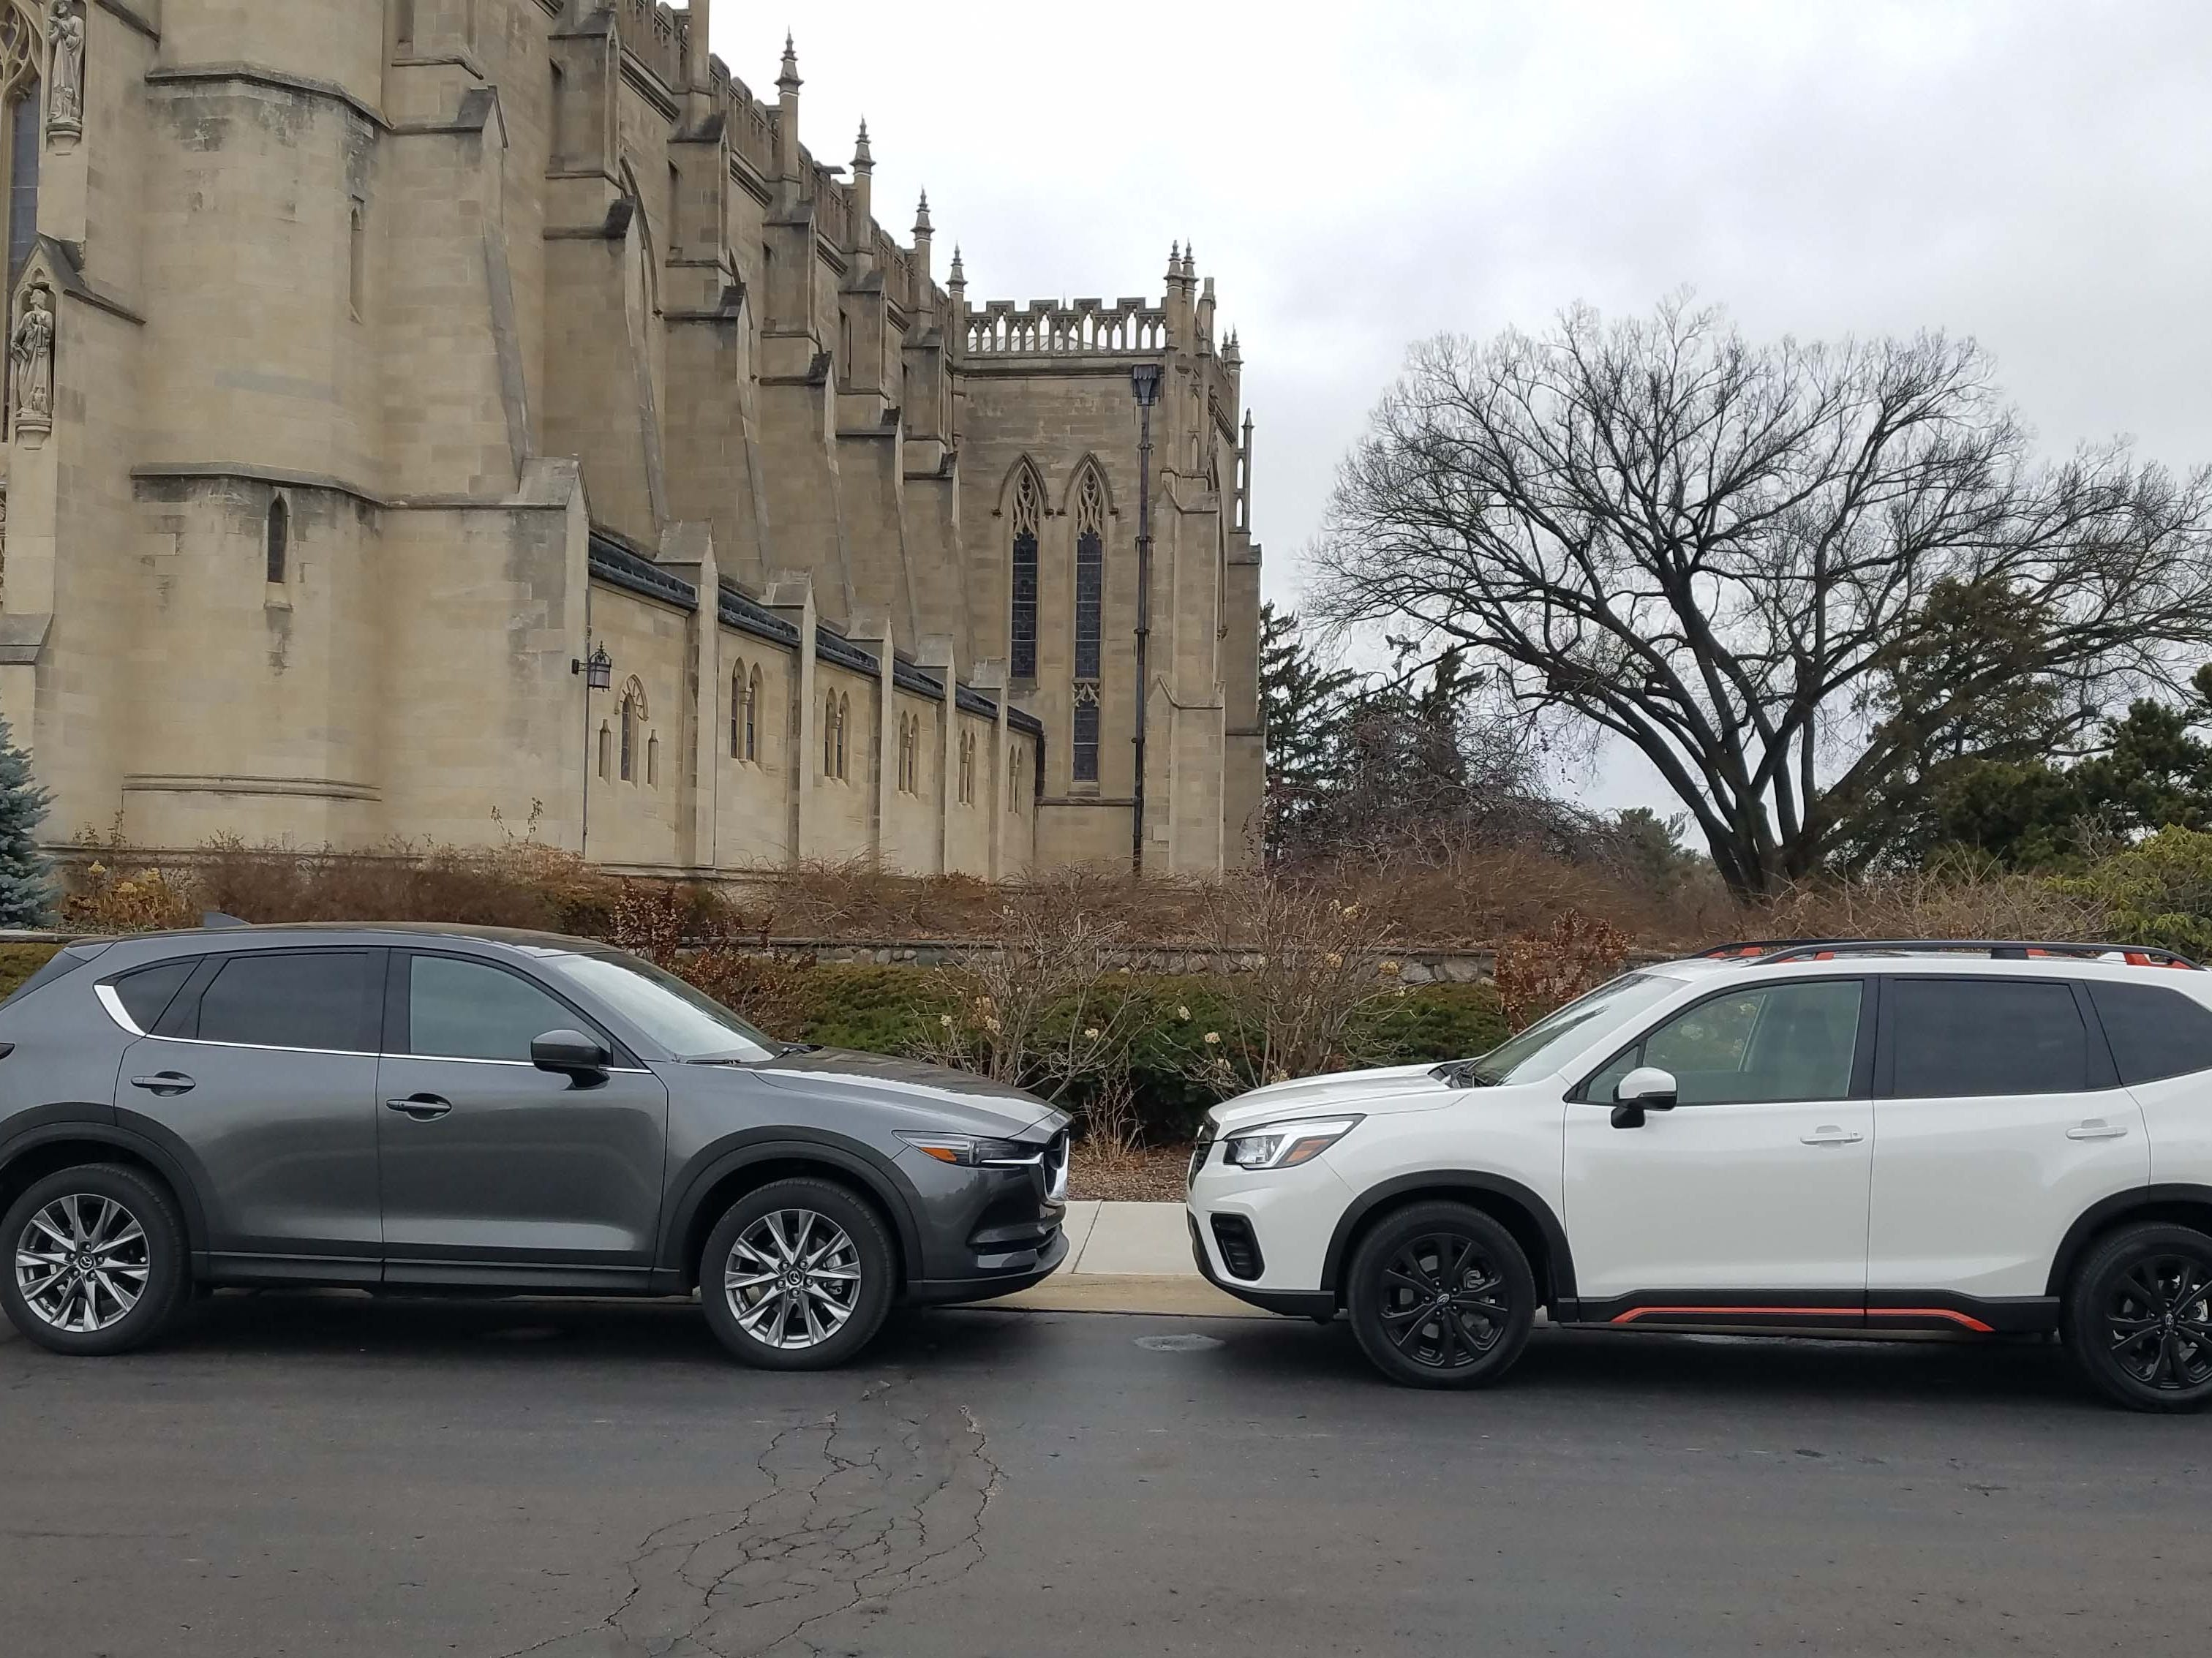 Profiles tell the tale. The Mazda CX-5 Signature, left, is sleek and sporty. The blockier Subaru Forester Sport is more concerned with cargo room and visibility.